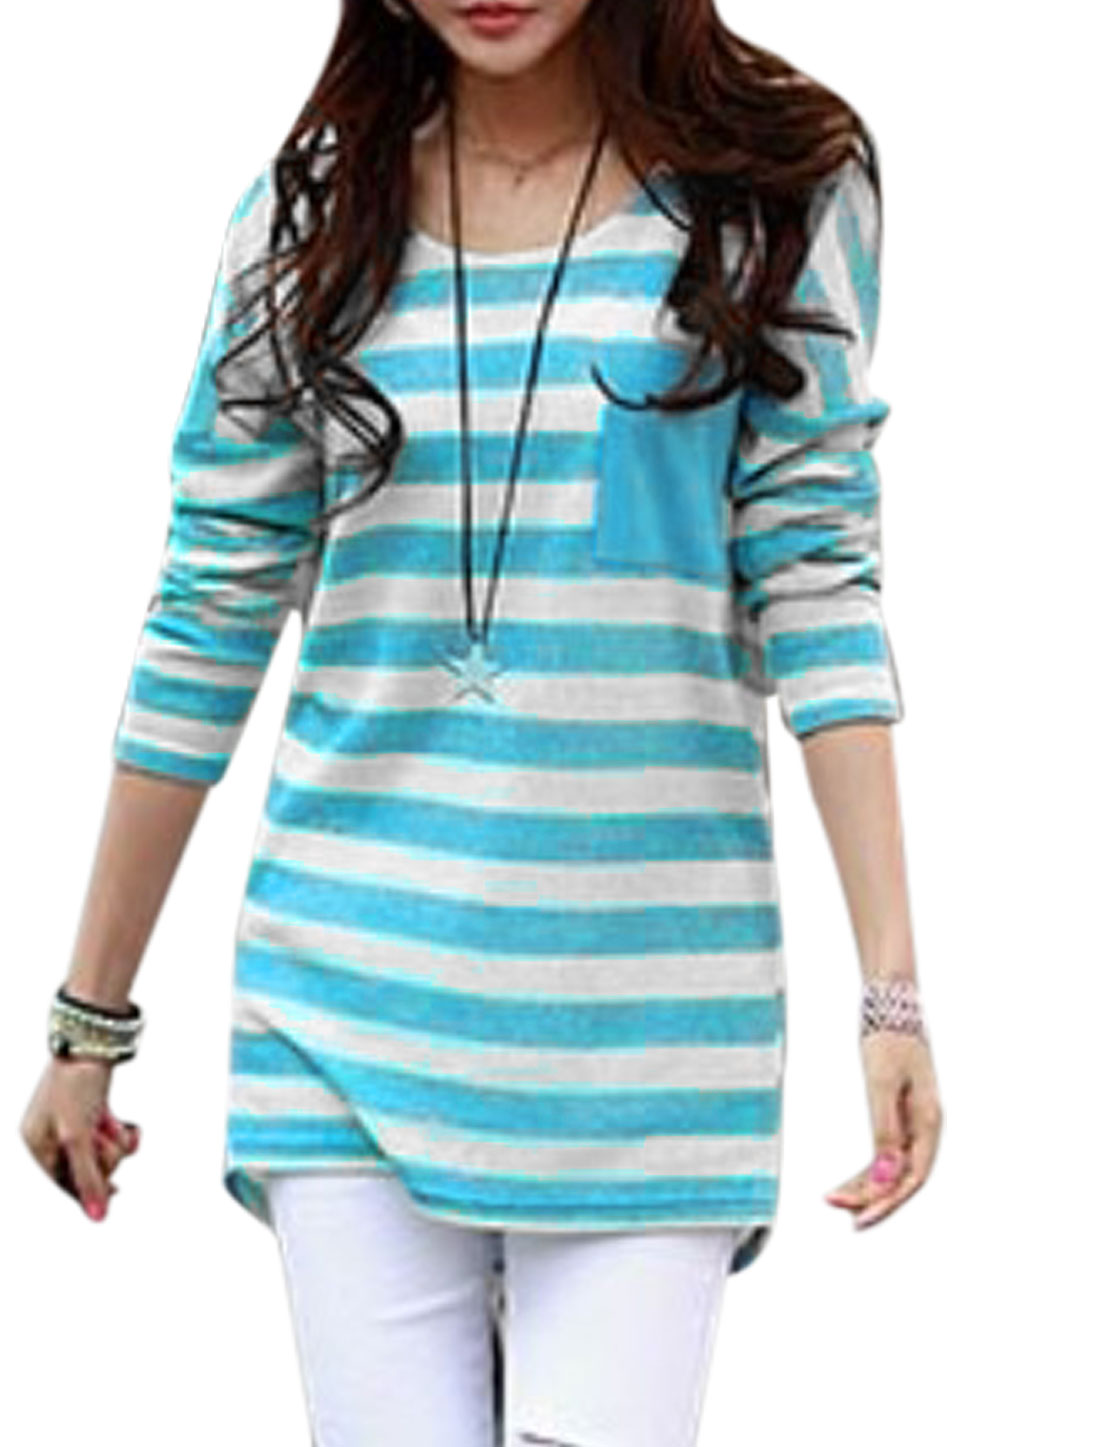 Ladies Stripes One Chest Pocket Spliced Blue White Tunic Knit Shirt XS